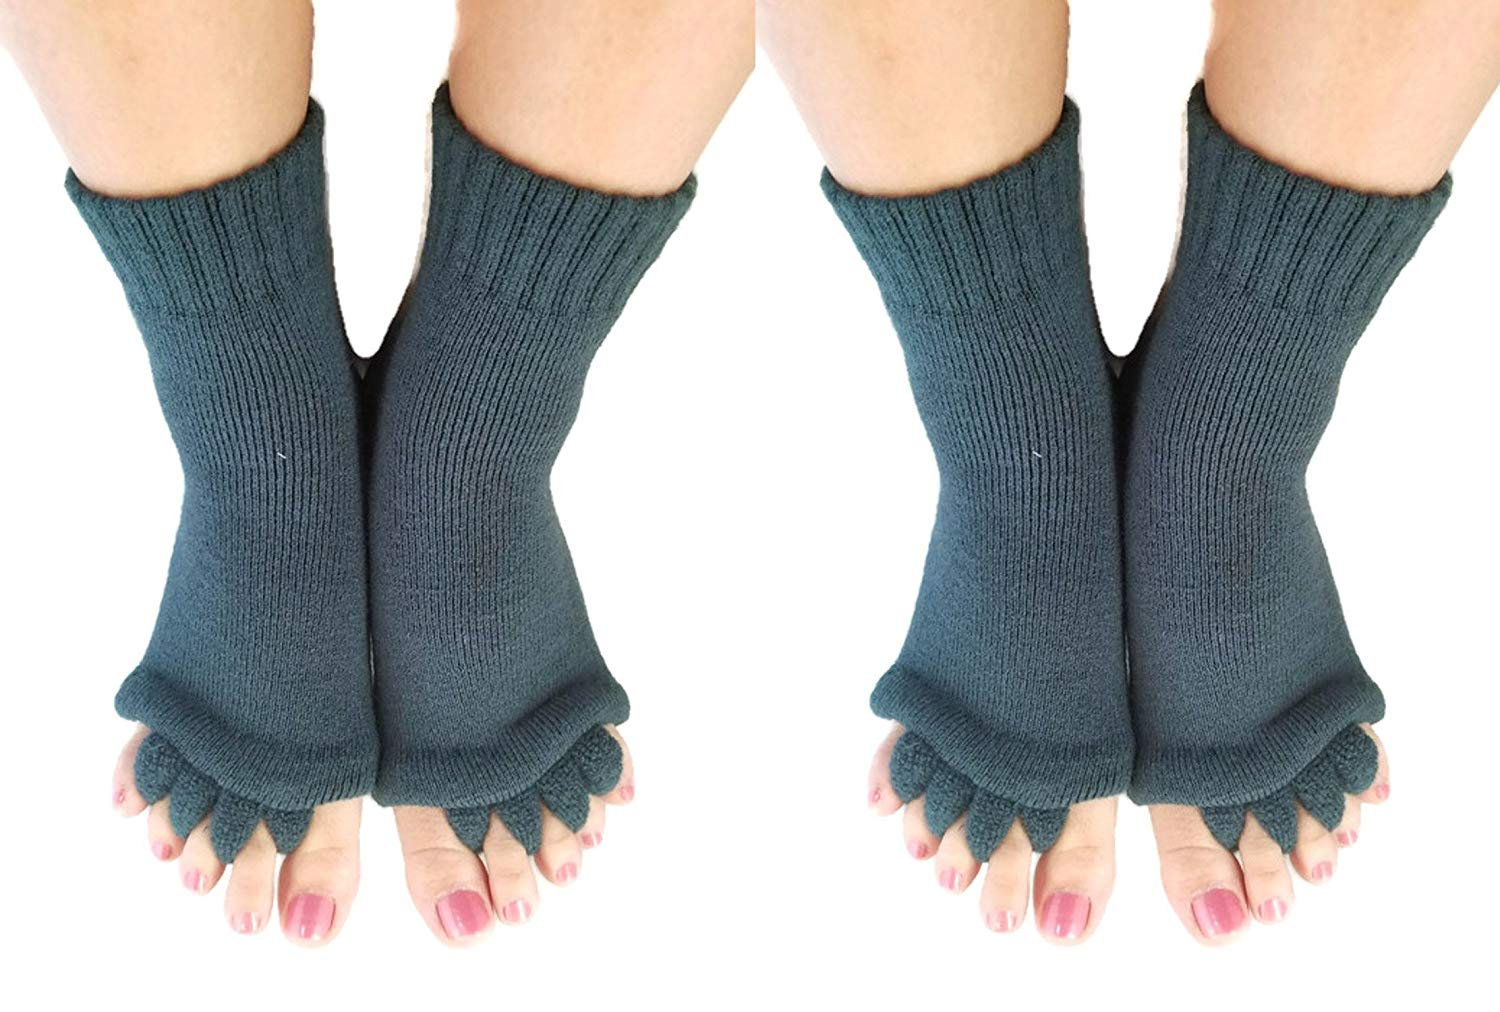 ddb817643ba9 Get Quotations · Comfy Toes Foot Alignment Socks Toe Spacer Relaxing  Comfort - Large   X-large